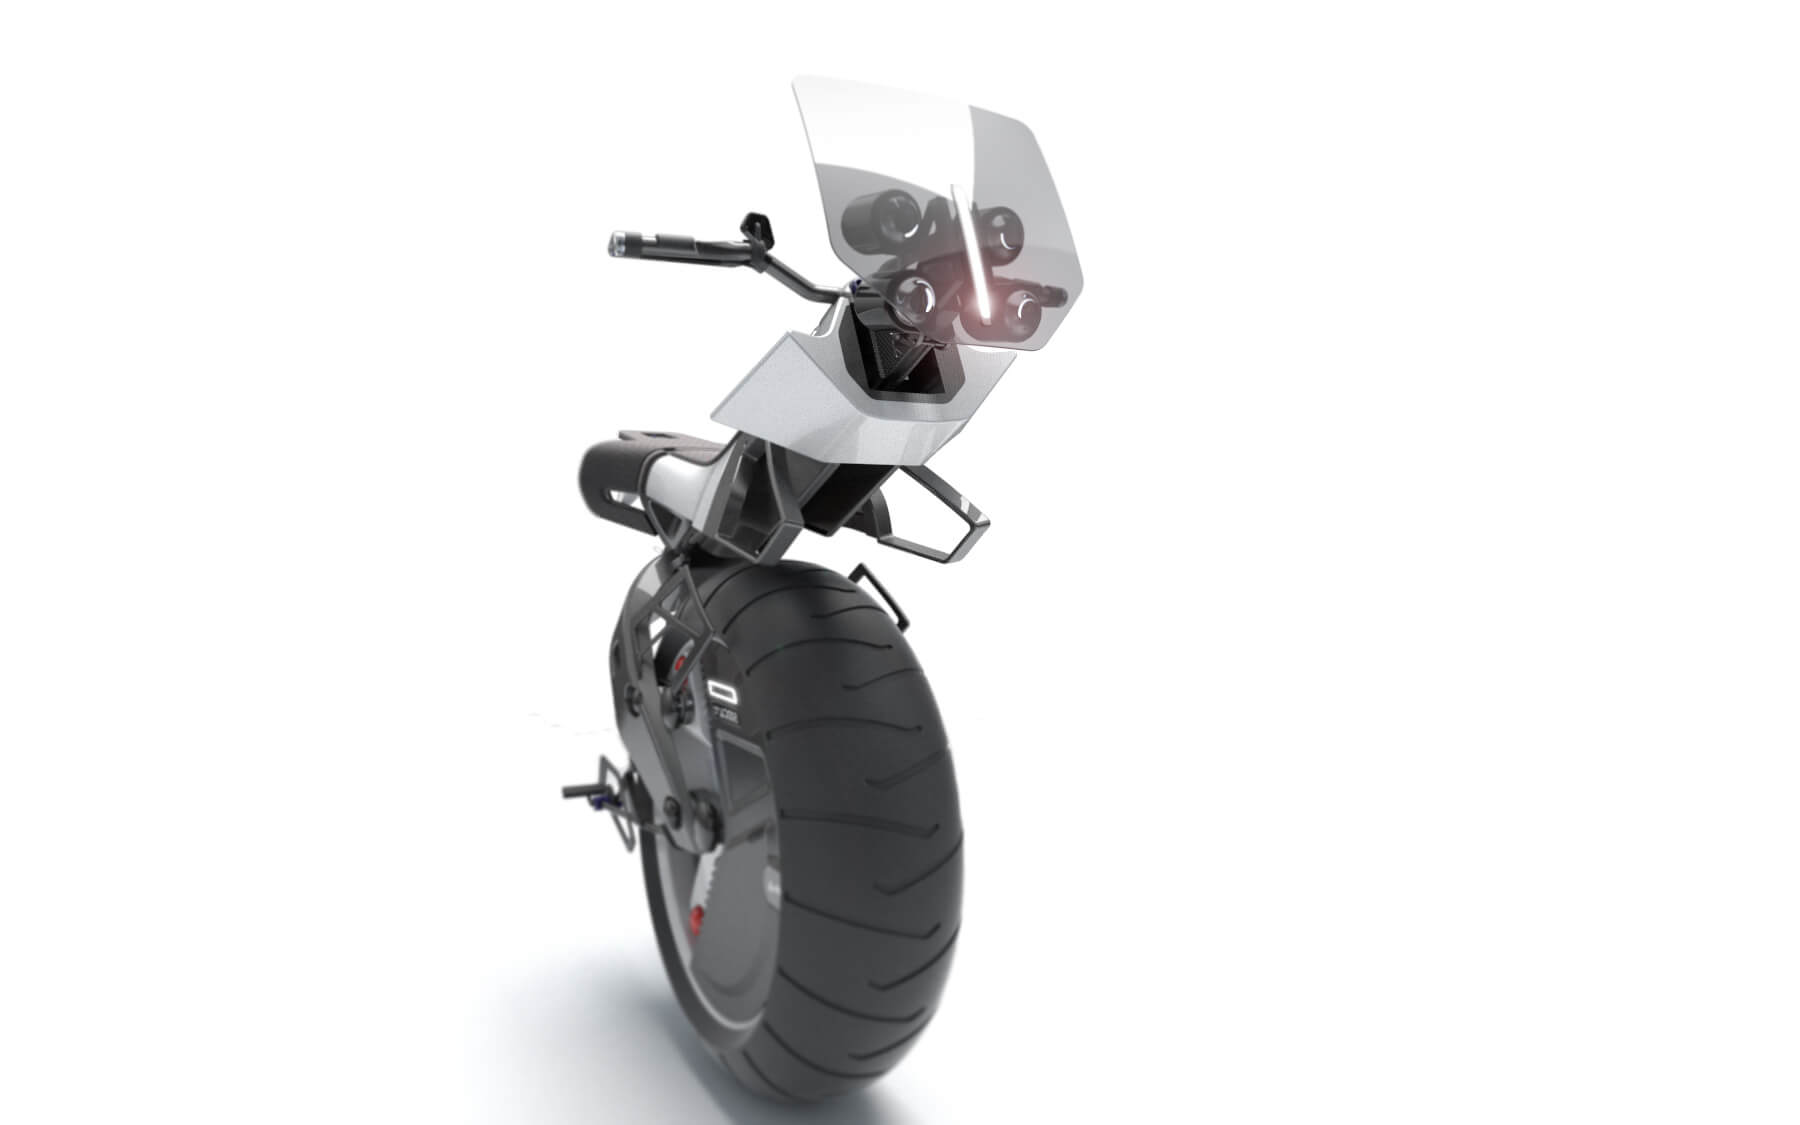 Industrial Design & Transportation Design - Döllmann Design + Architektur, Industrial Design, Transportation Design, a monobike, white, with a single wheel, side view